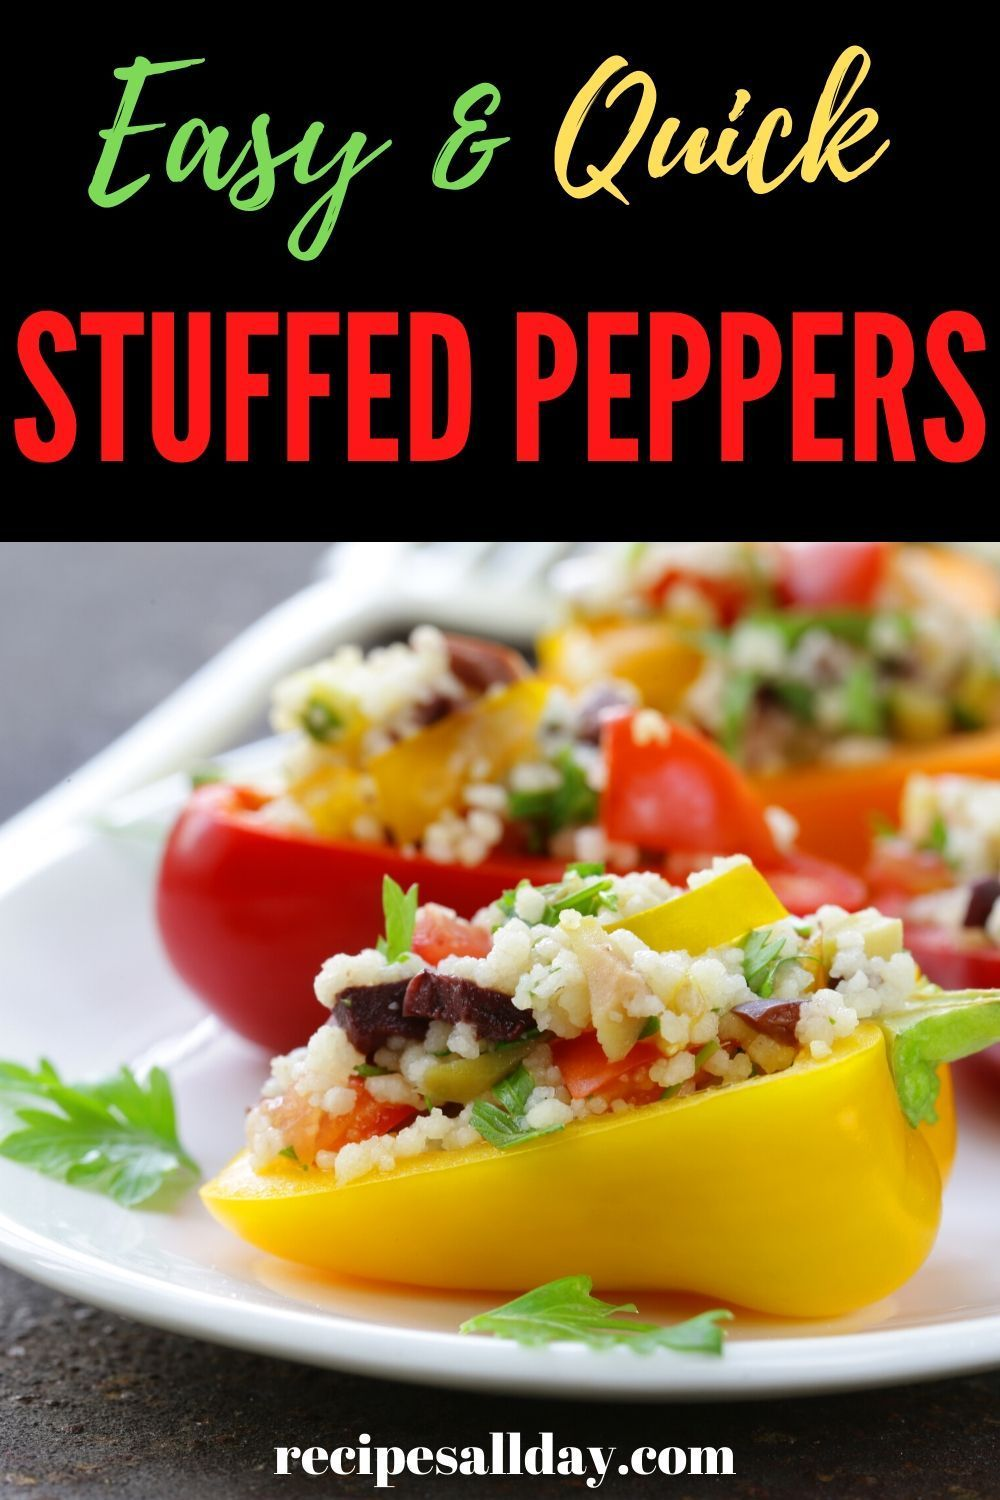 This Recipe For Stuffed Peppers Makes It So Easy To Make Your Own Stuffed Peppers It Offers Three Different Stuffings It Makes For An Unusual Colorful Side D Recipe In 2020